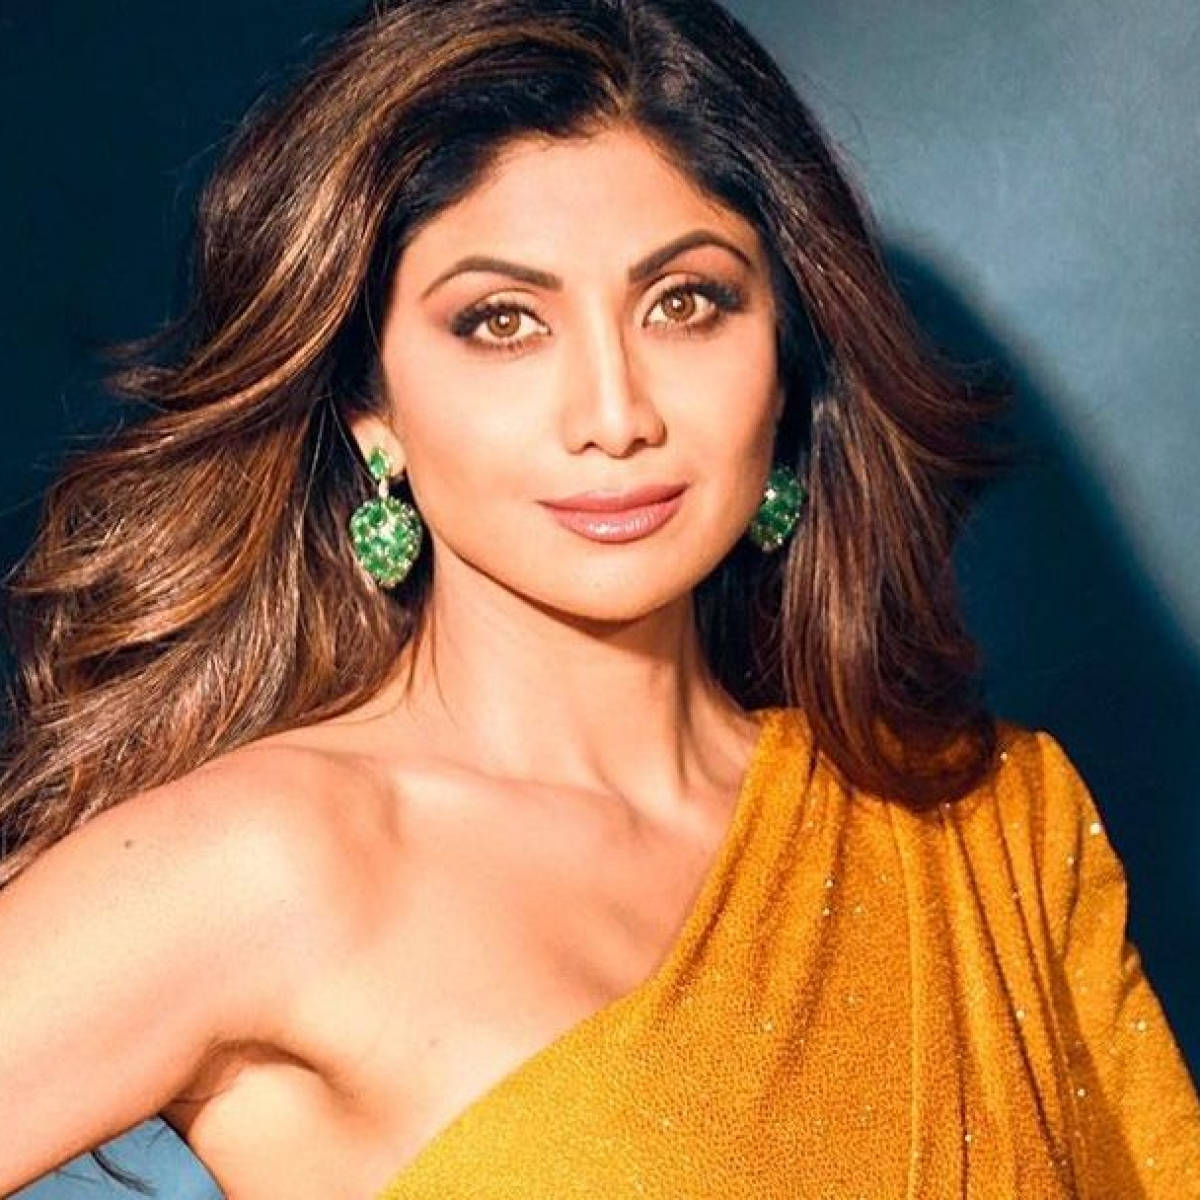 Shilpa Shetty shares a message on mental health, says 'It's okay to take a break from social media' amid COVID-19 crisis